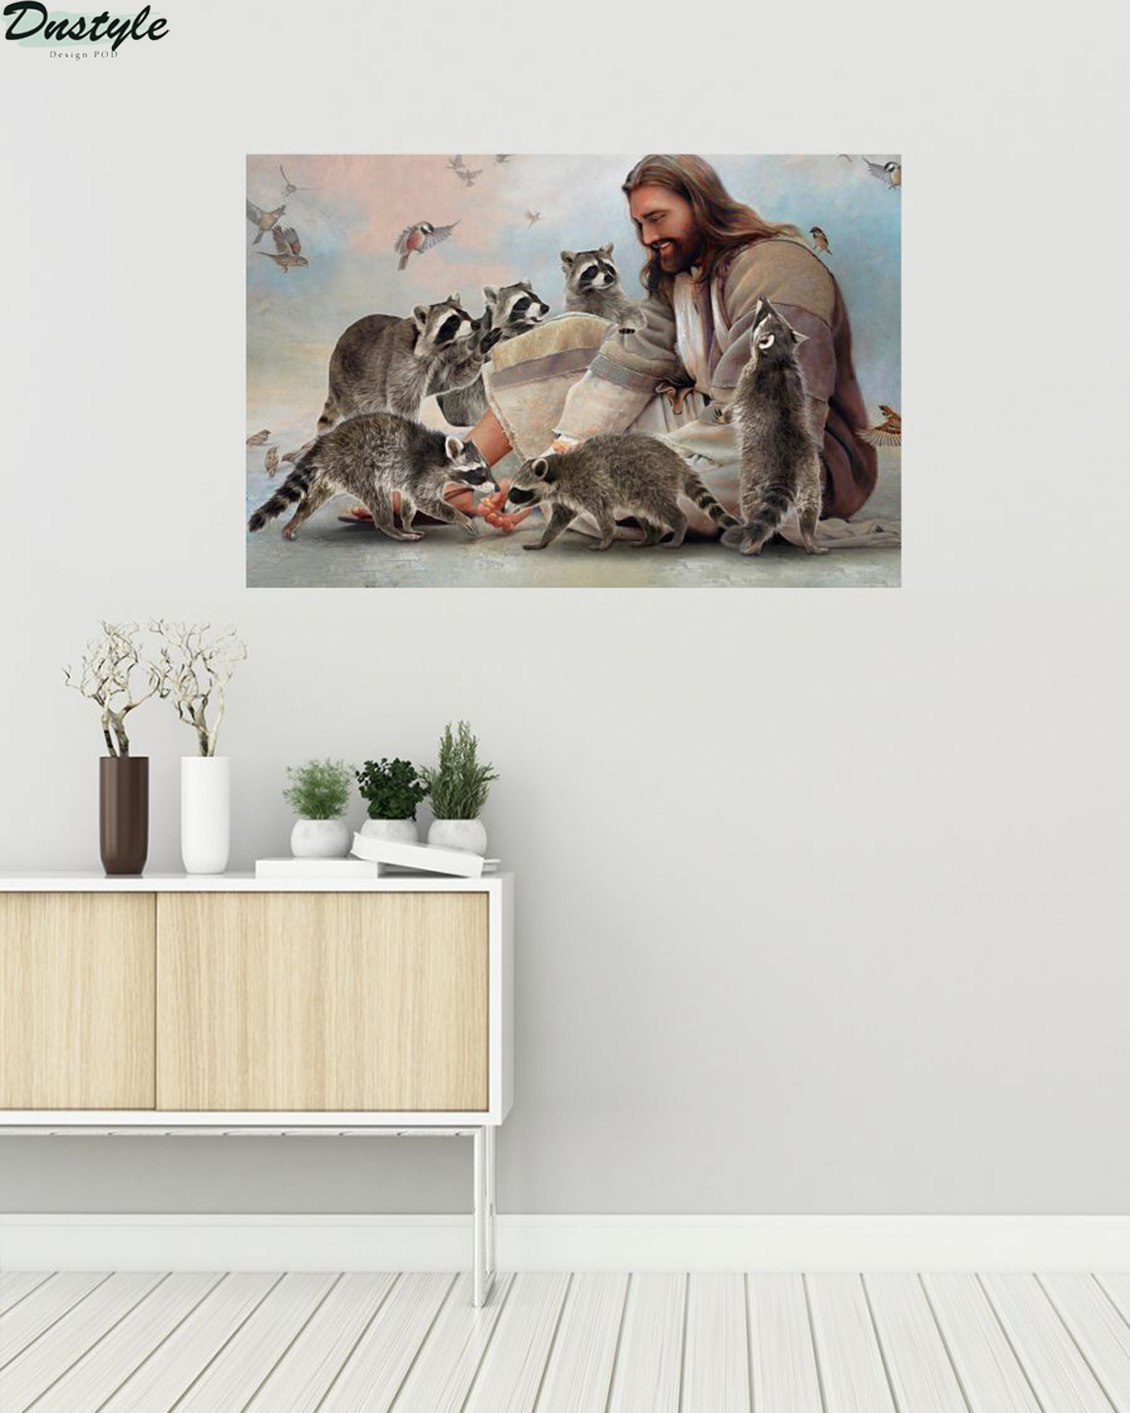 God surrounded by Raccoon angels poster